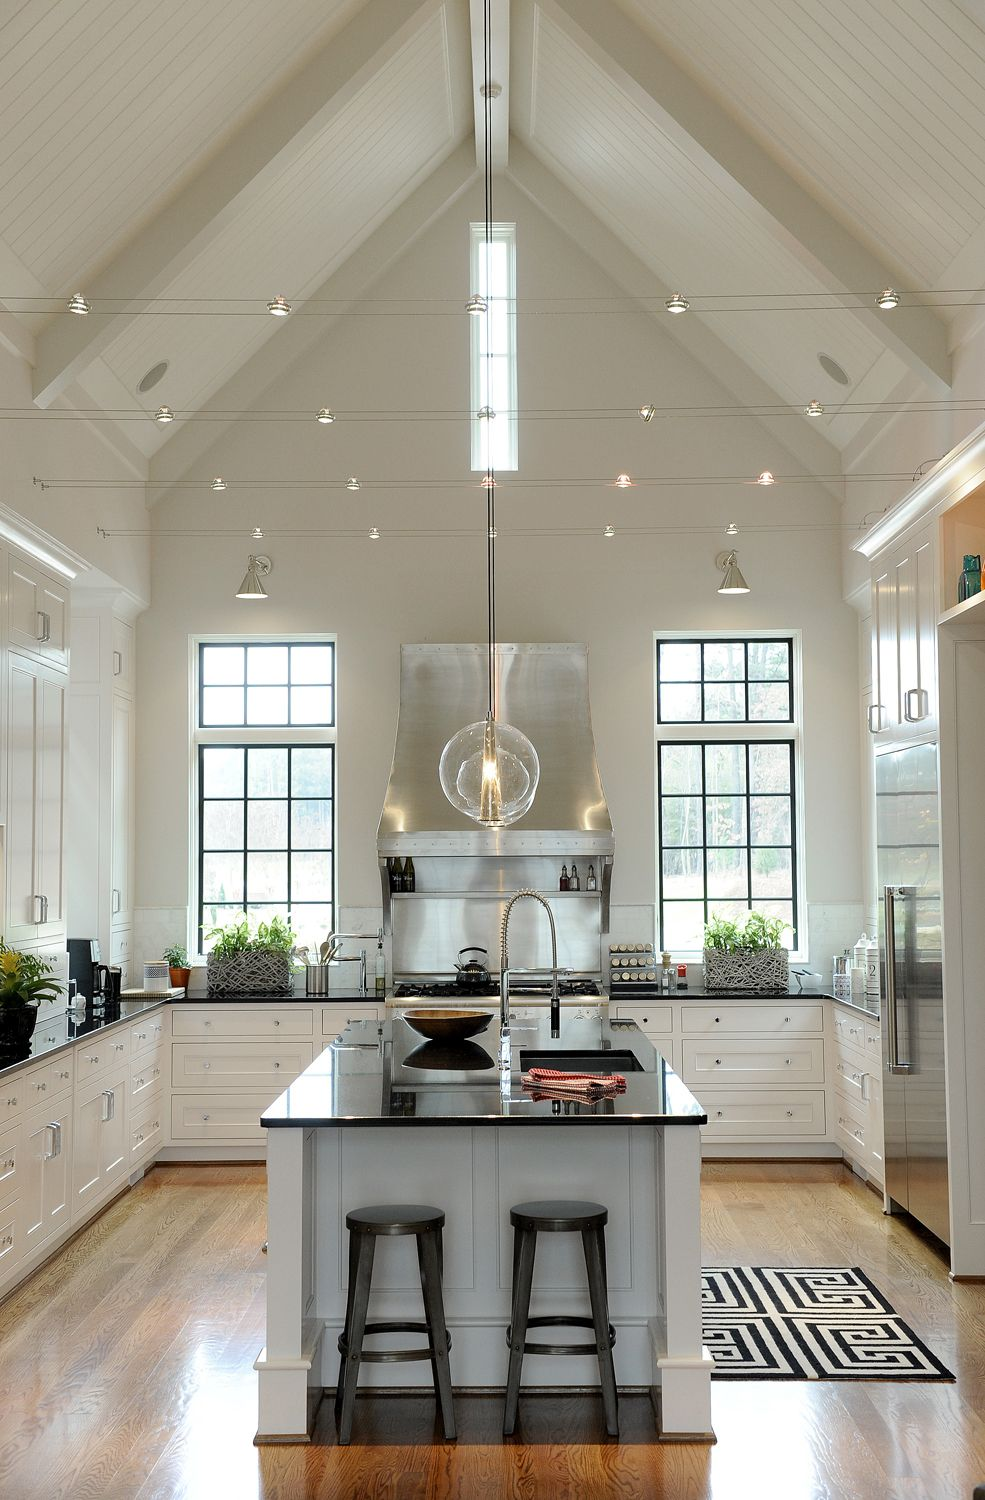 Large window kitchen designs  the chancellorus kitchen at nc state university love the volume